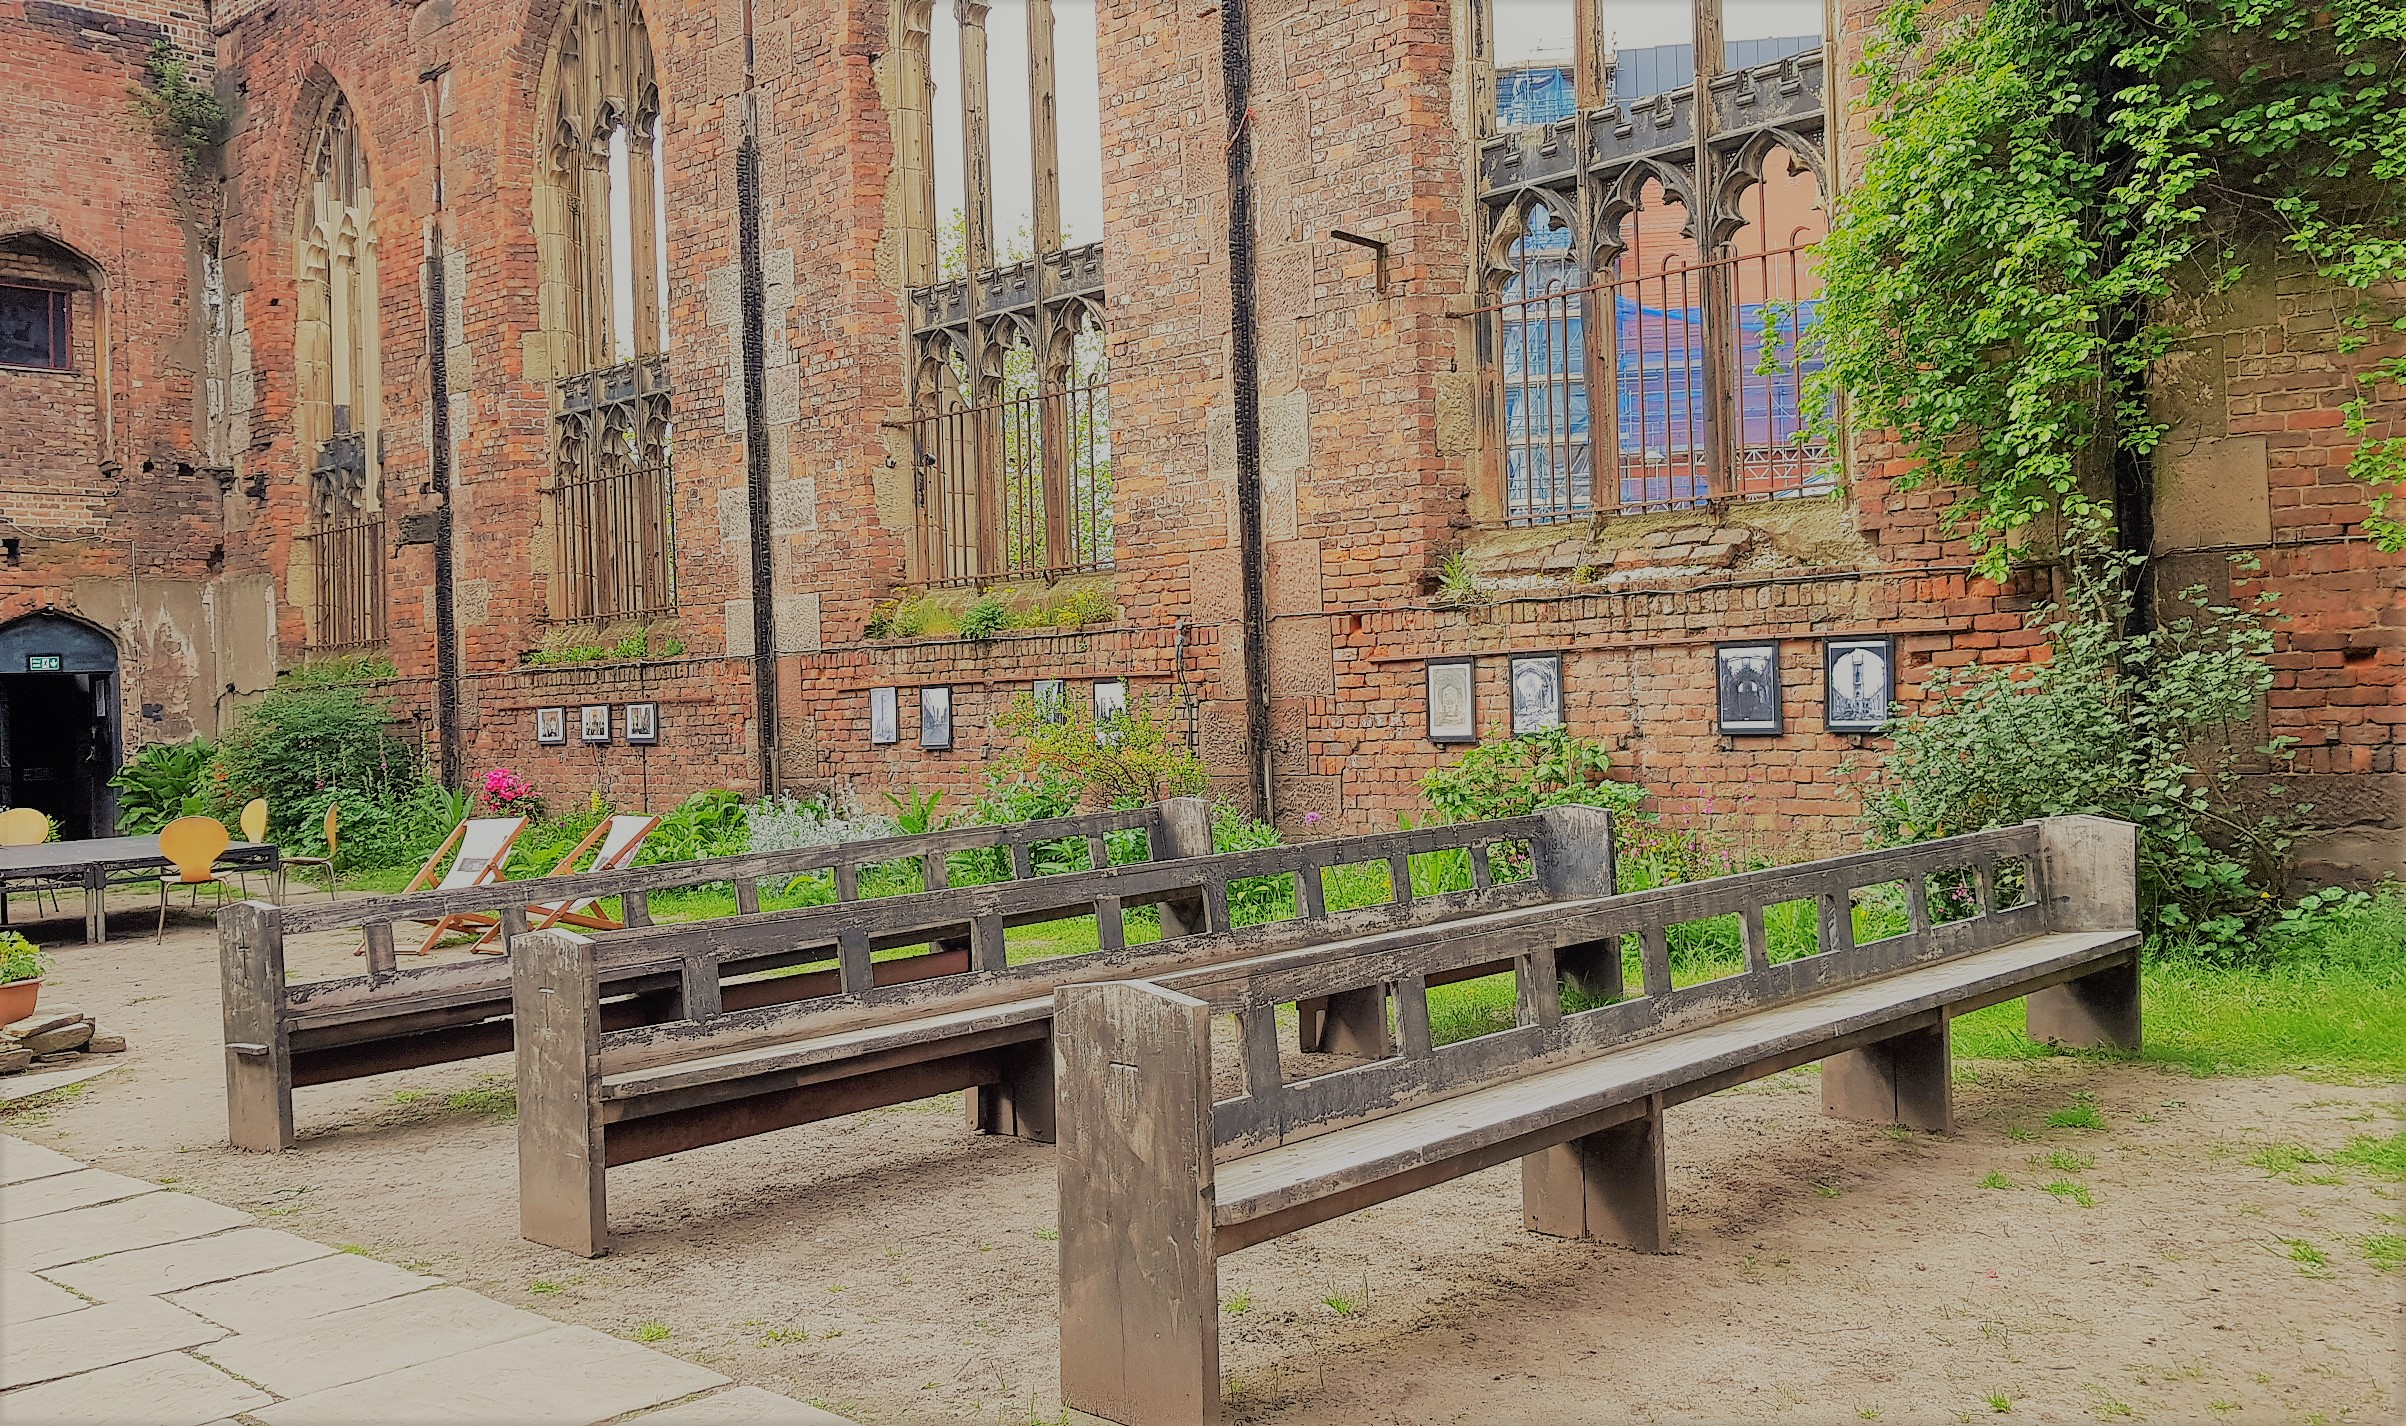 3 wooden pews in a church shell open to the weather